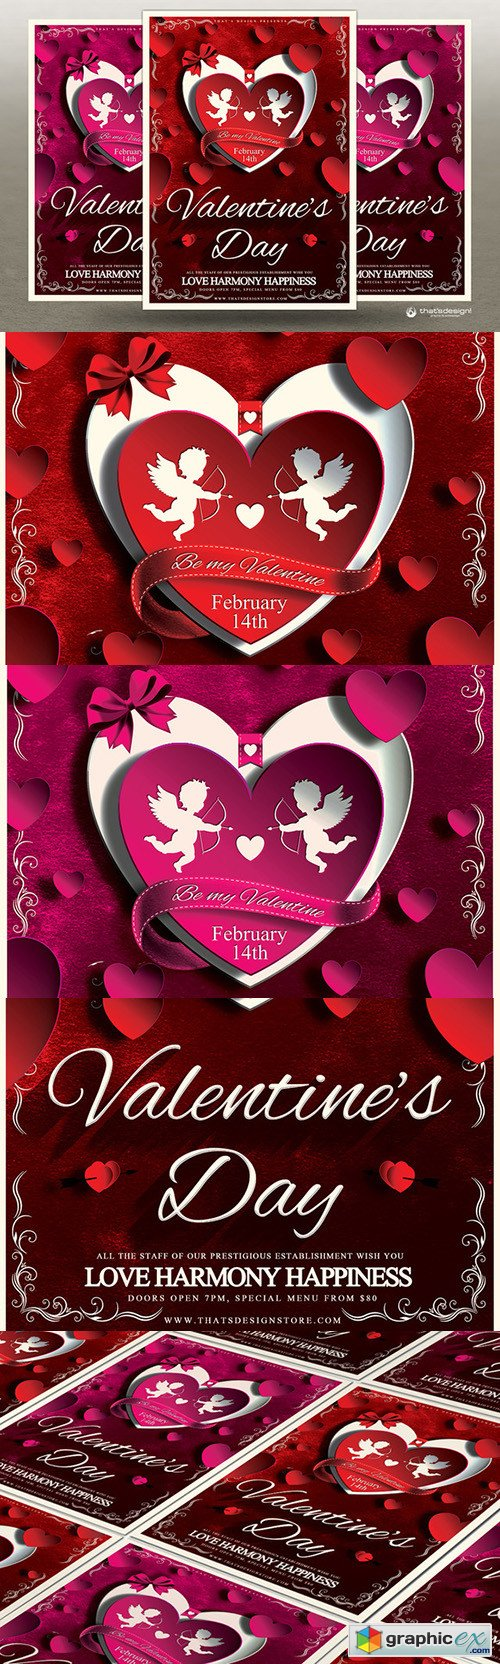 Valentines Day Flyer Template V3